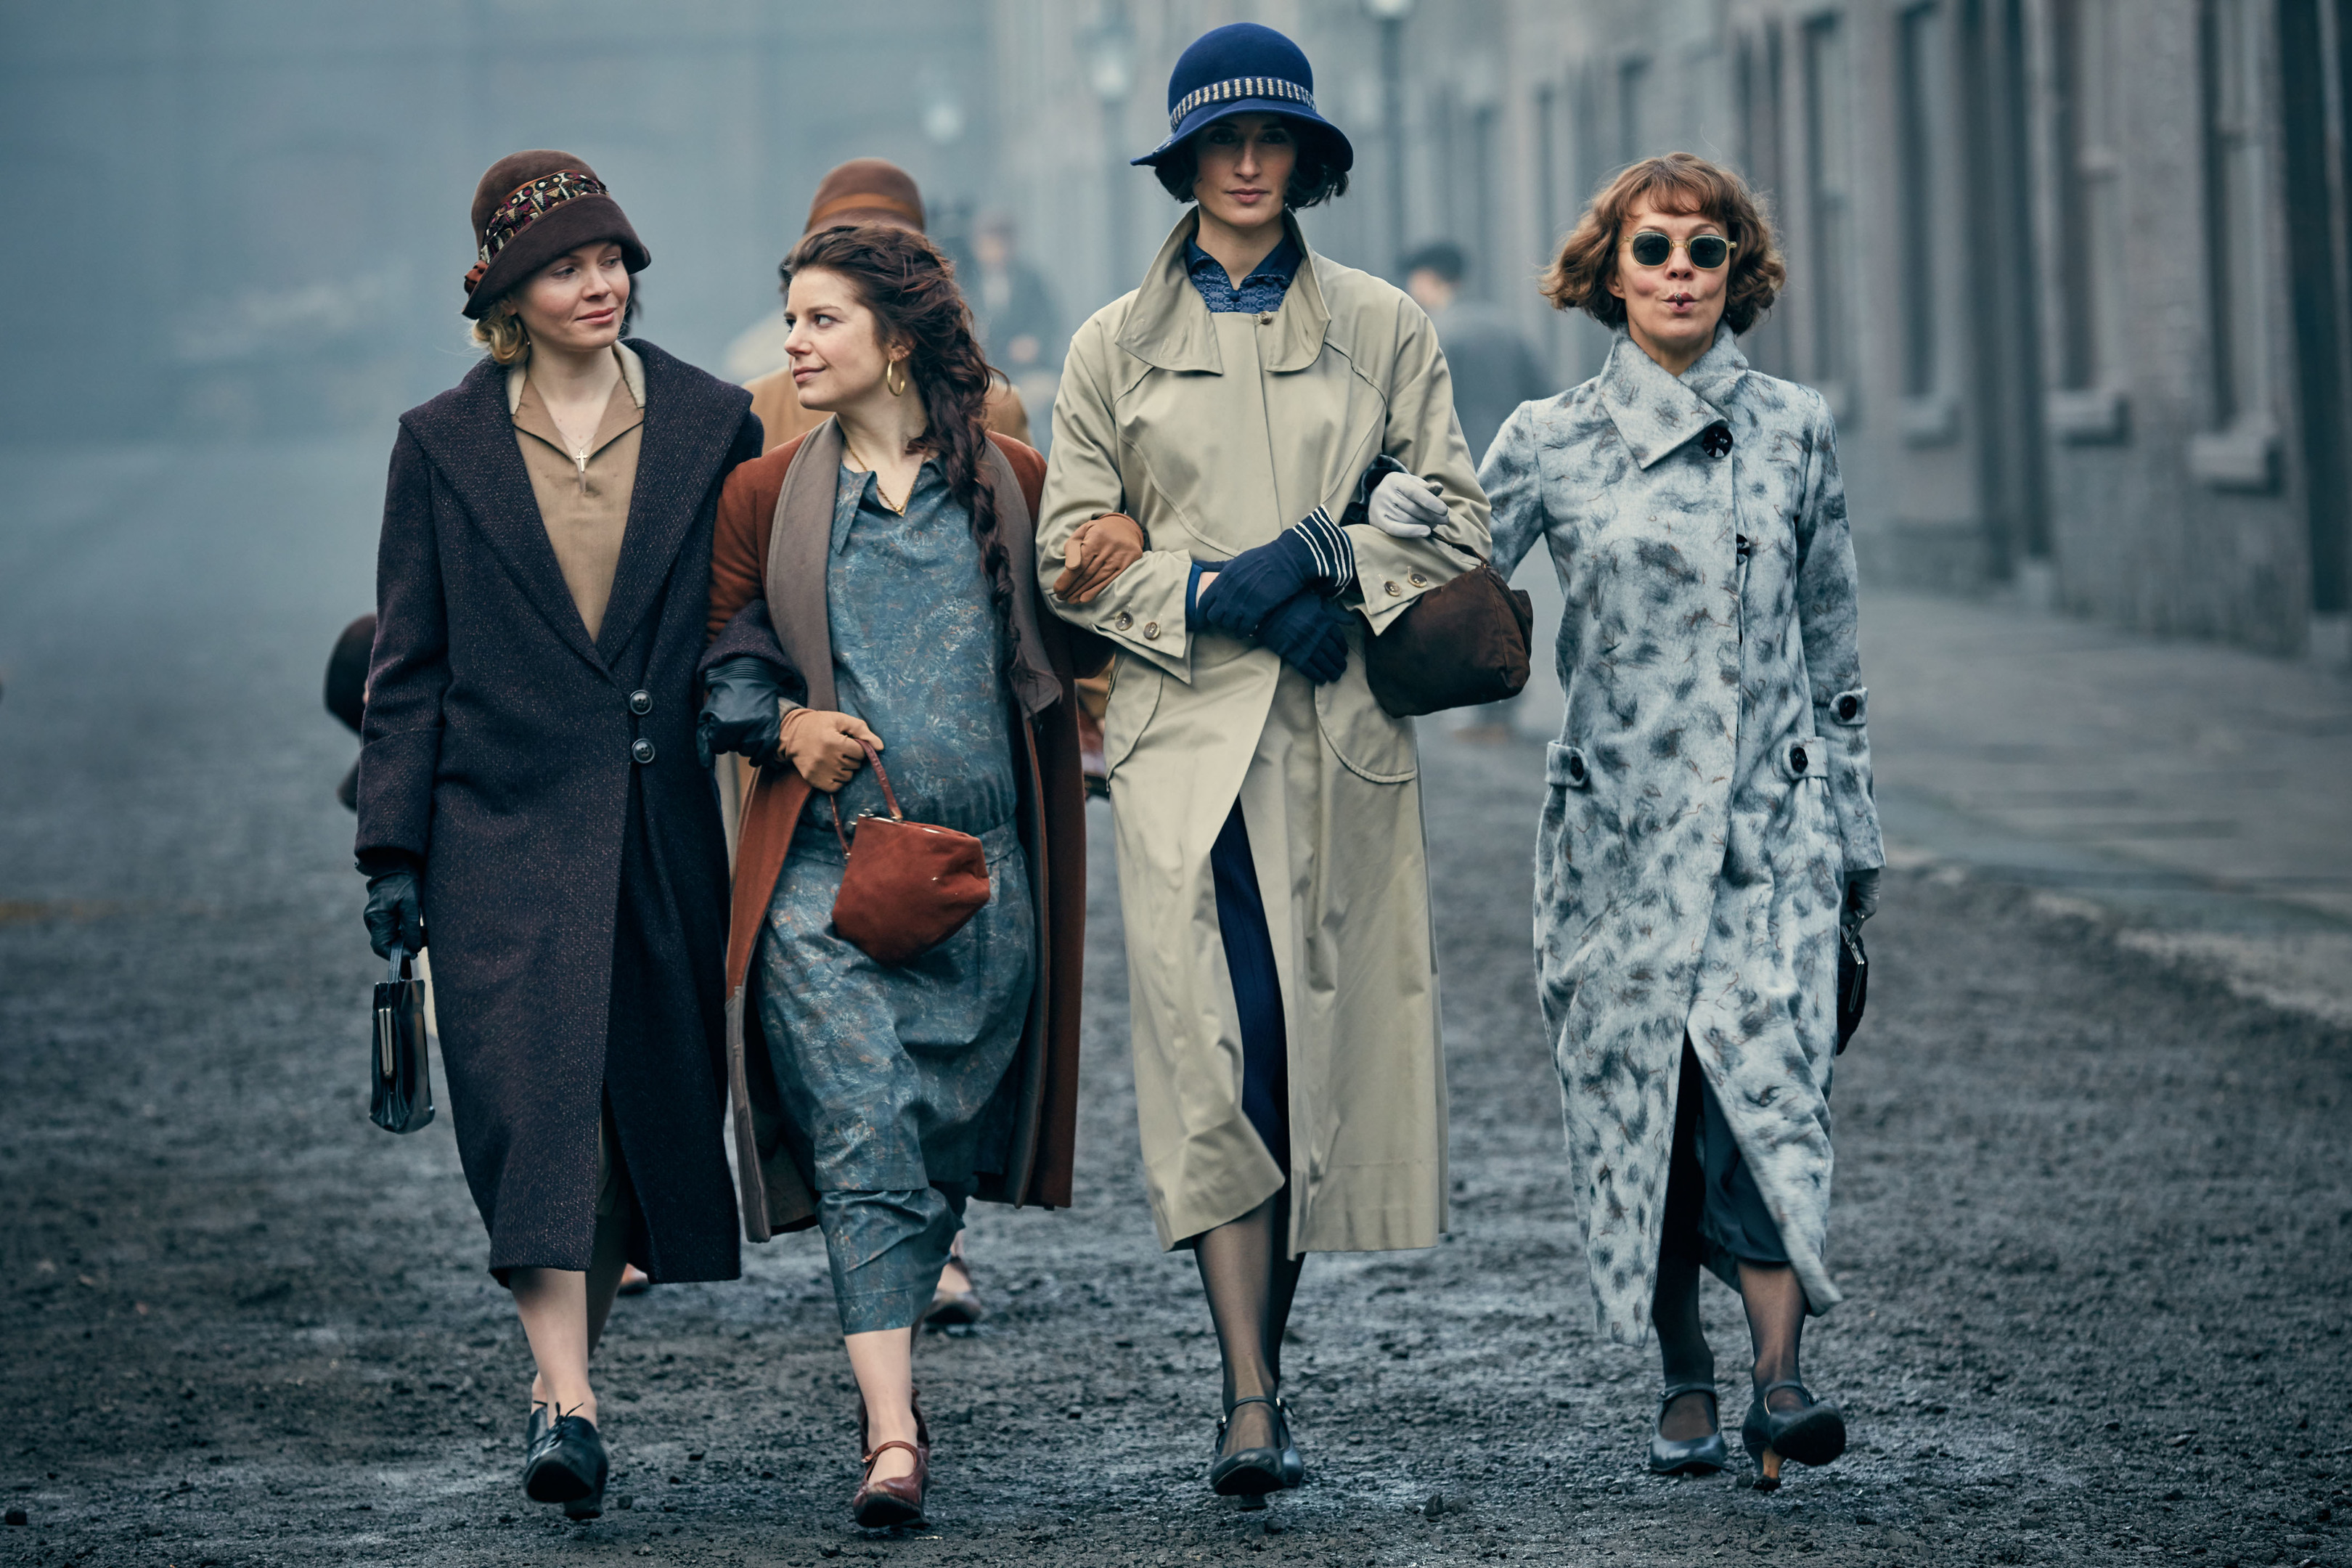 Kate Phillips as Linda Shelby, Aime-Ffion Edwards (Esme Shelby), Natasha O'Keefe (Lizzie Stark) and Helen McCrory (Aunt Polly Gray) get to work in Peaky Blinders (BBC)